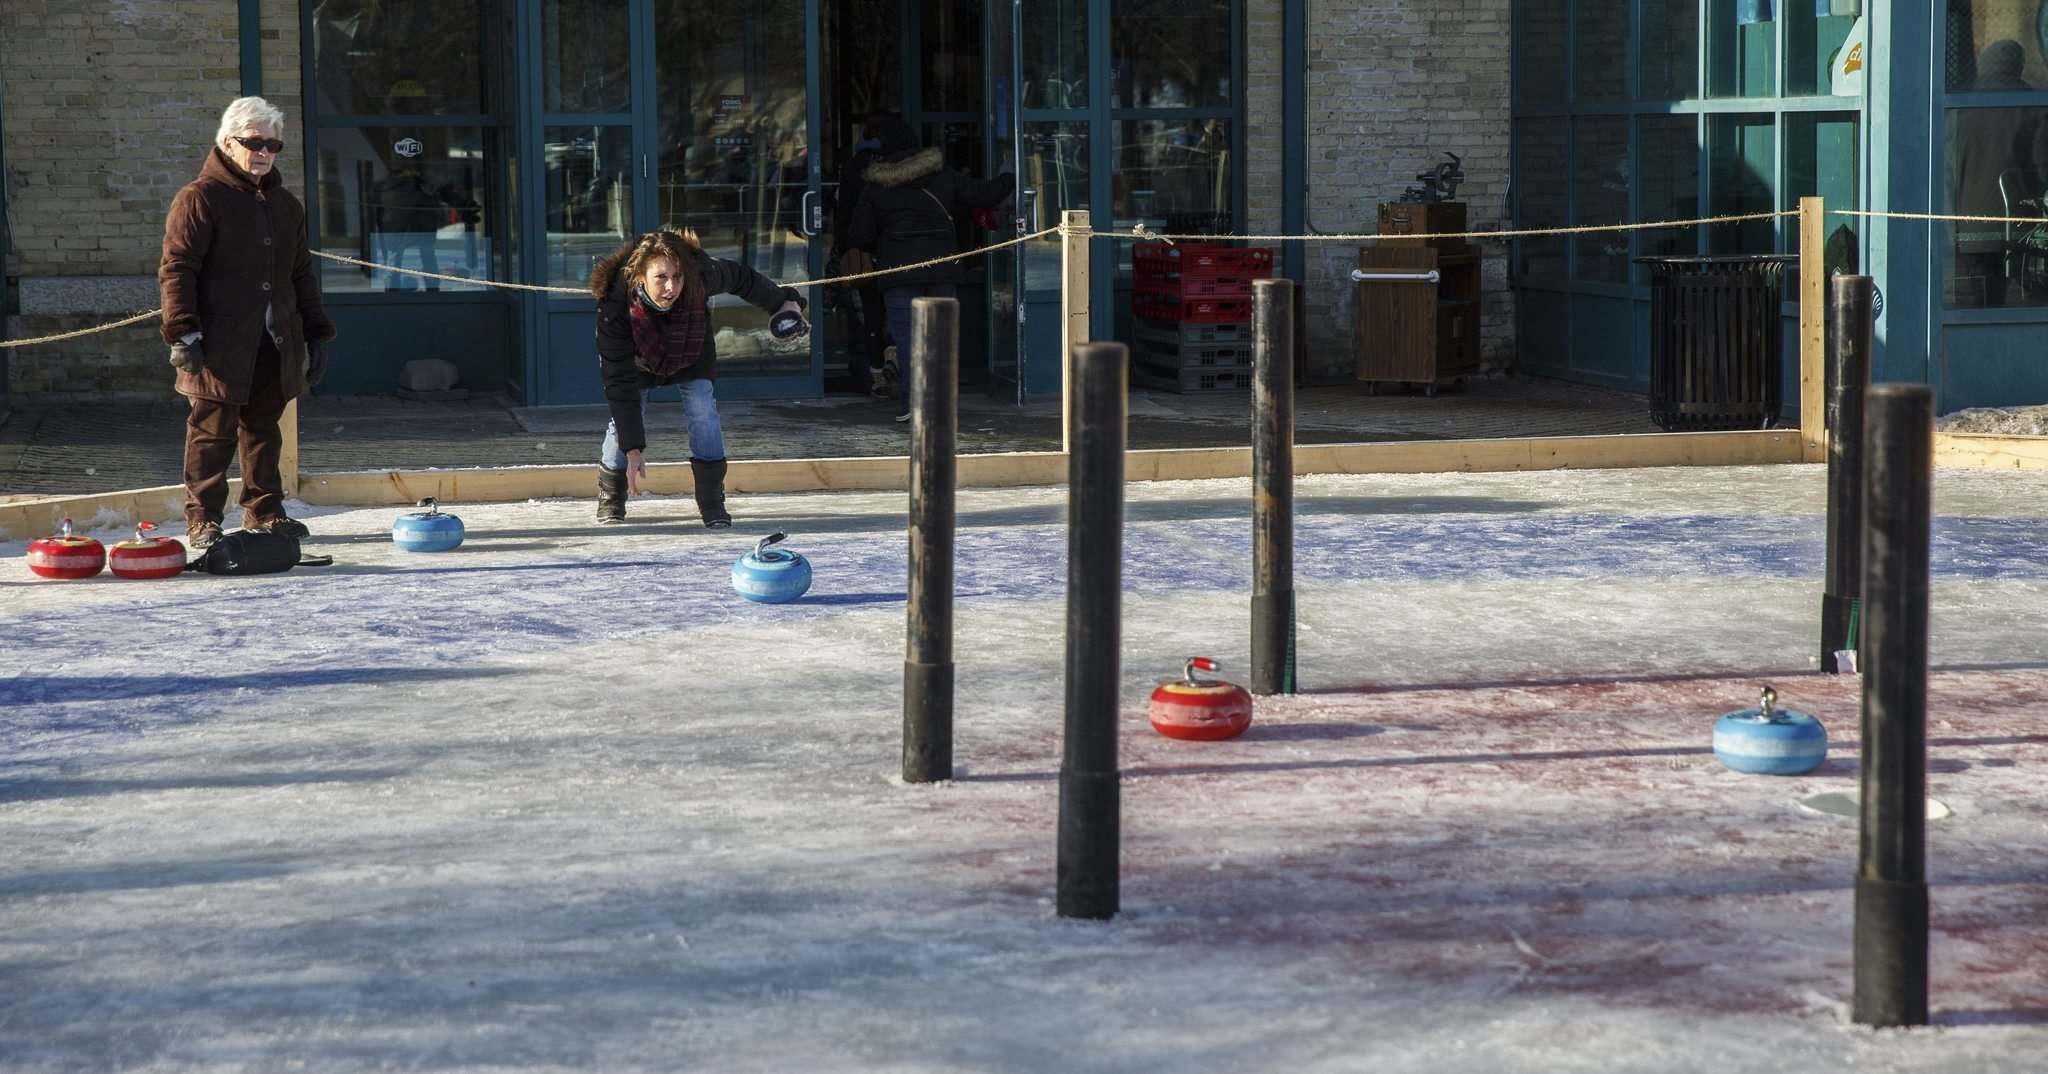 Lorene Giasson throws a curling rock while playing Crokicurl with her friend Rosa Conrad (left).